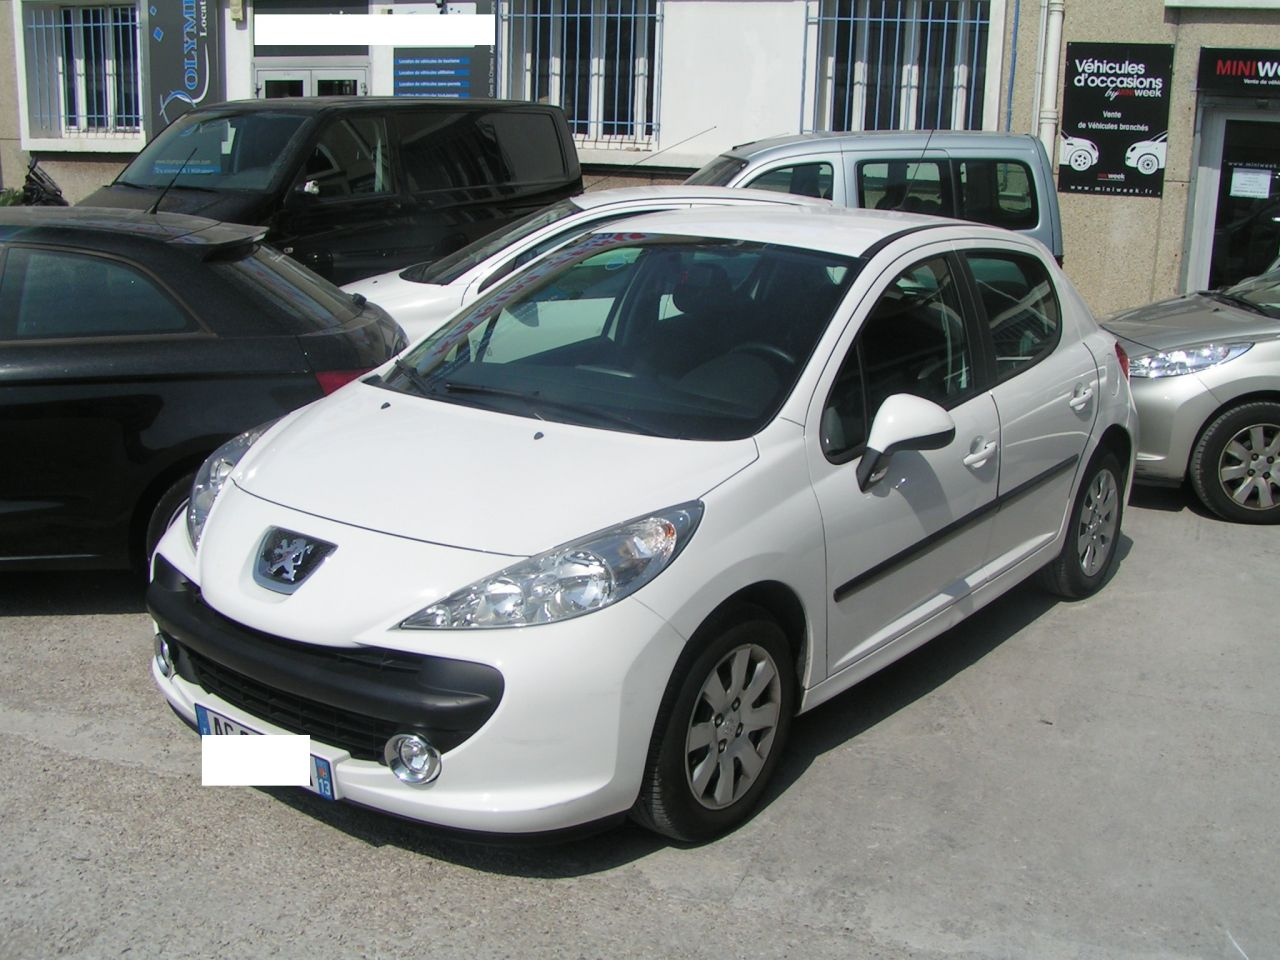 vendu cette semaine peugeot 207 1 4 active 1ere main 13 000 kms garantie pro reprise auto et. Black Bedroom Furniture Sets. Home Design Ideas